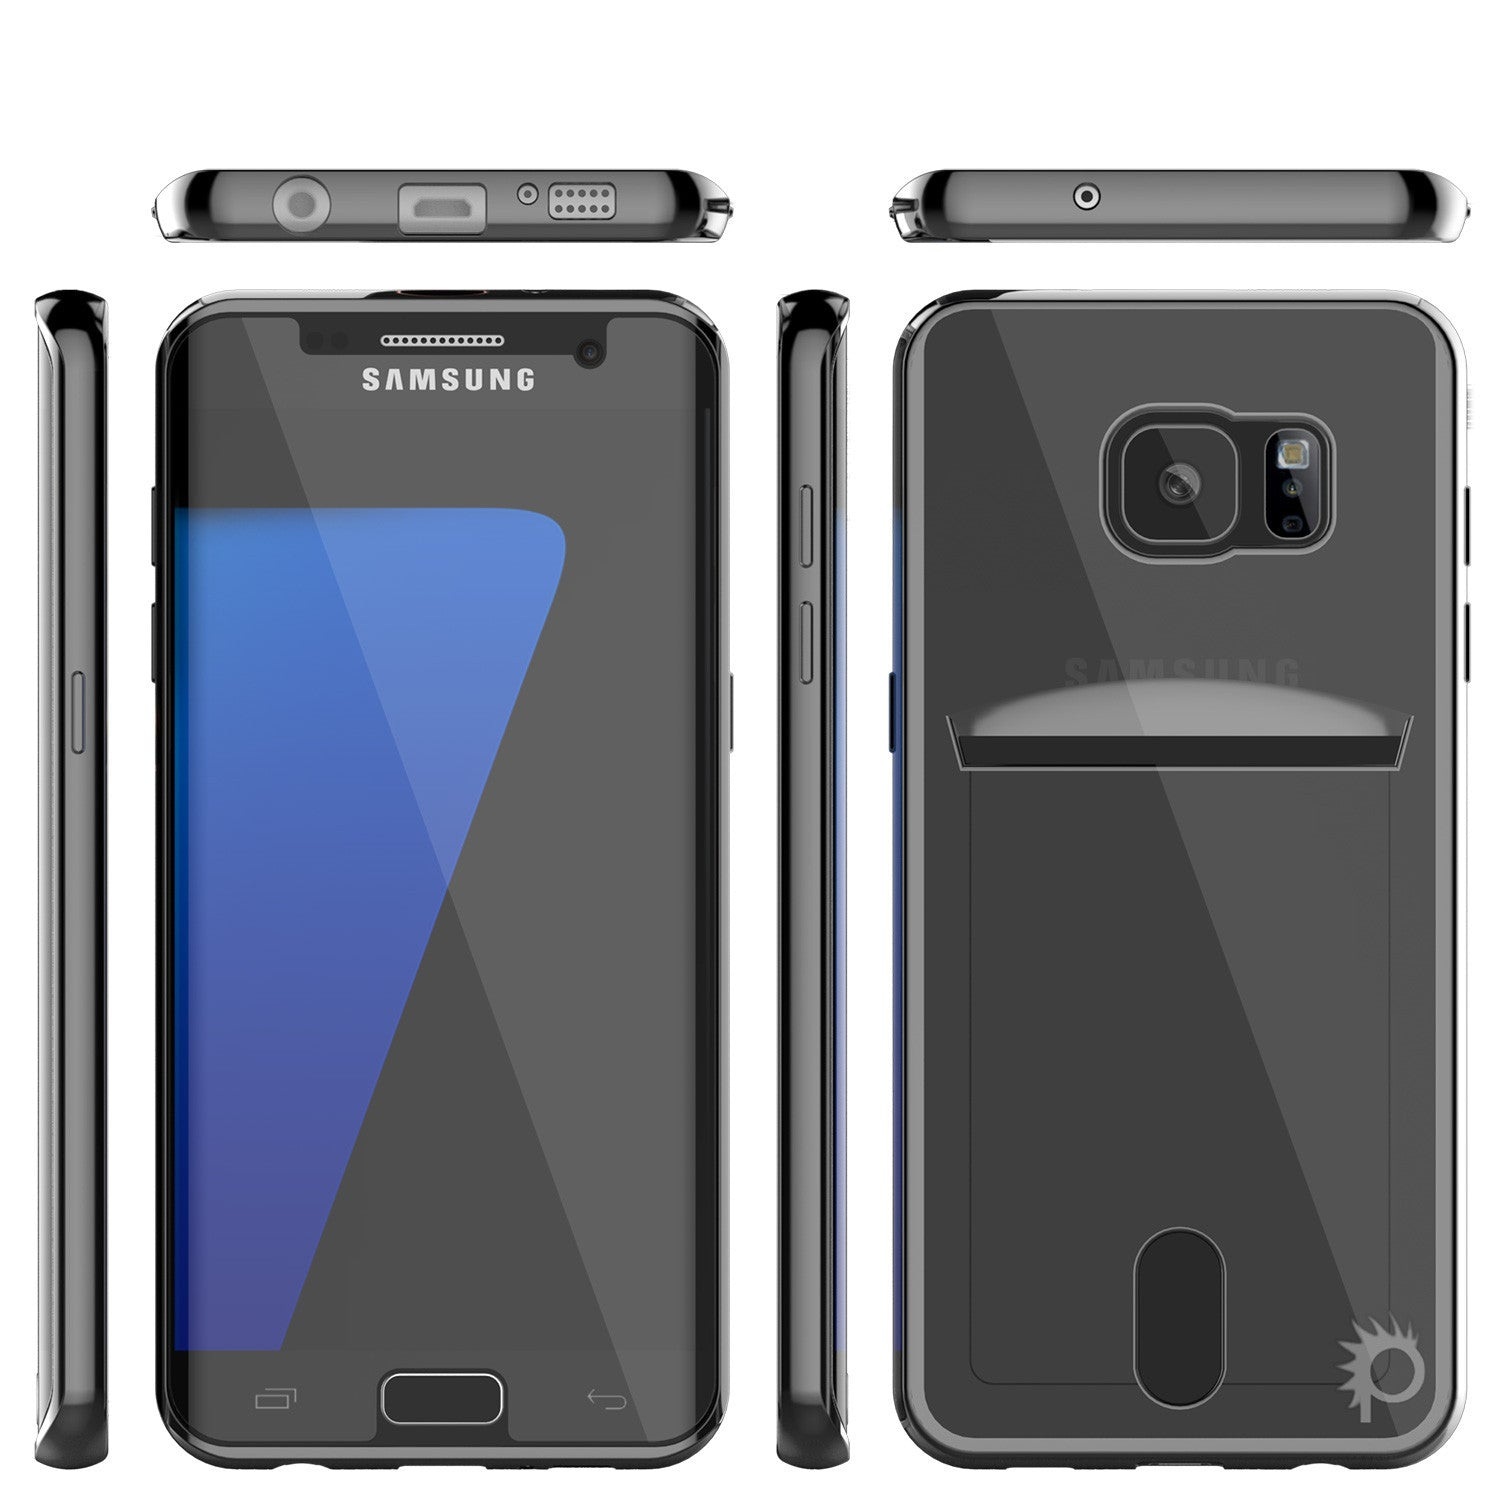 Galaxy S7 Case, PUNKCASE® LUCID Black Series | Card Slot | SHIELD Screen Protector | Ultra fit